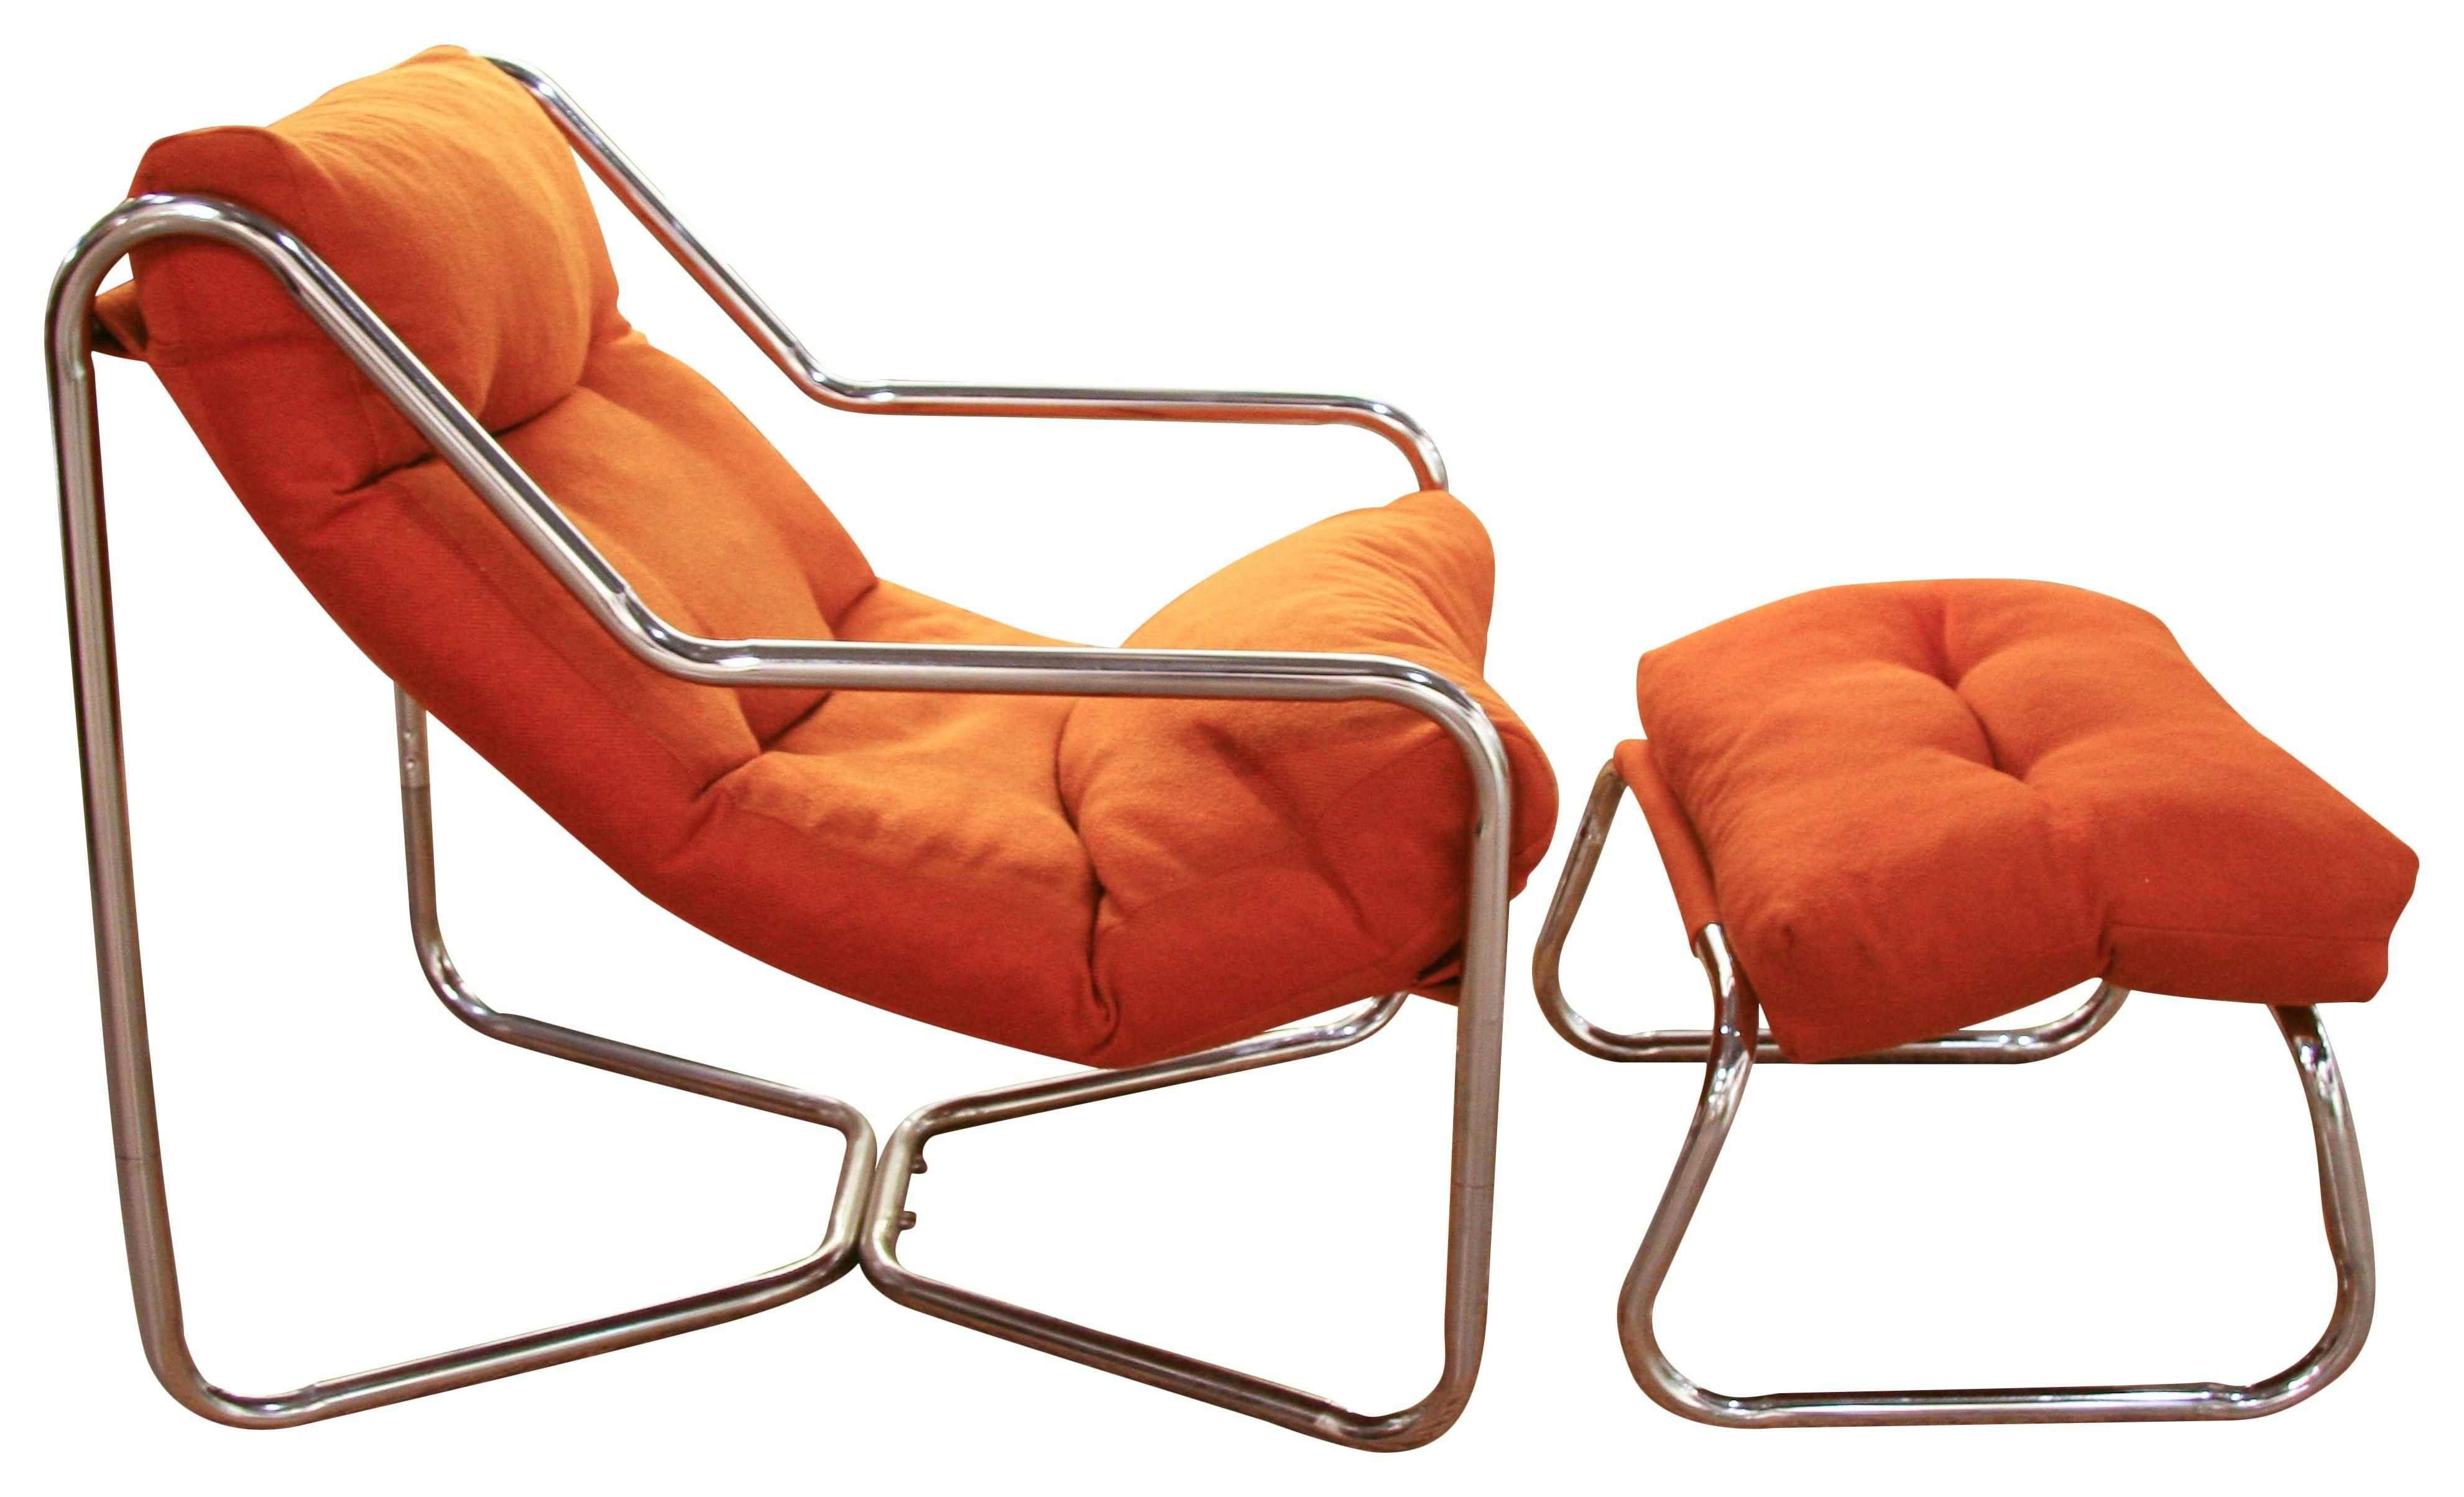 Mid Century Orange Chrome Sling Chair $390 Seating